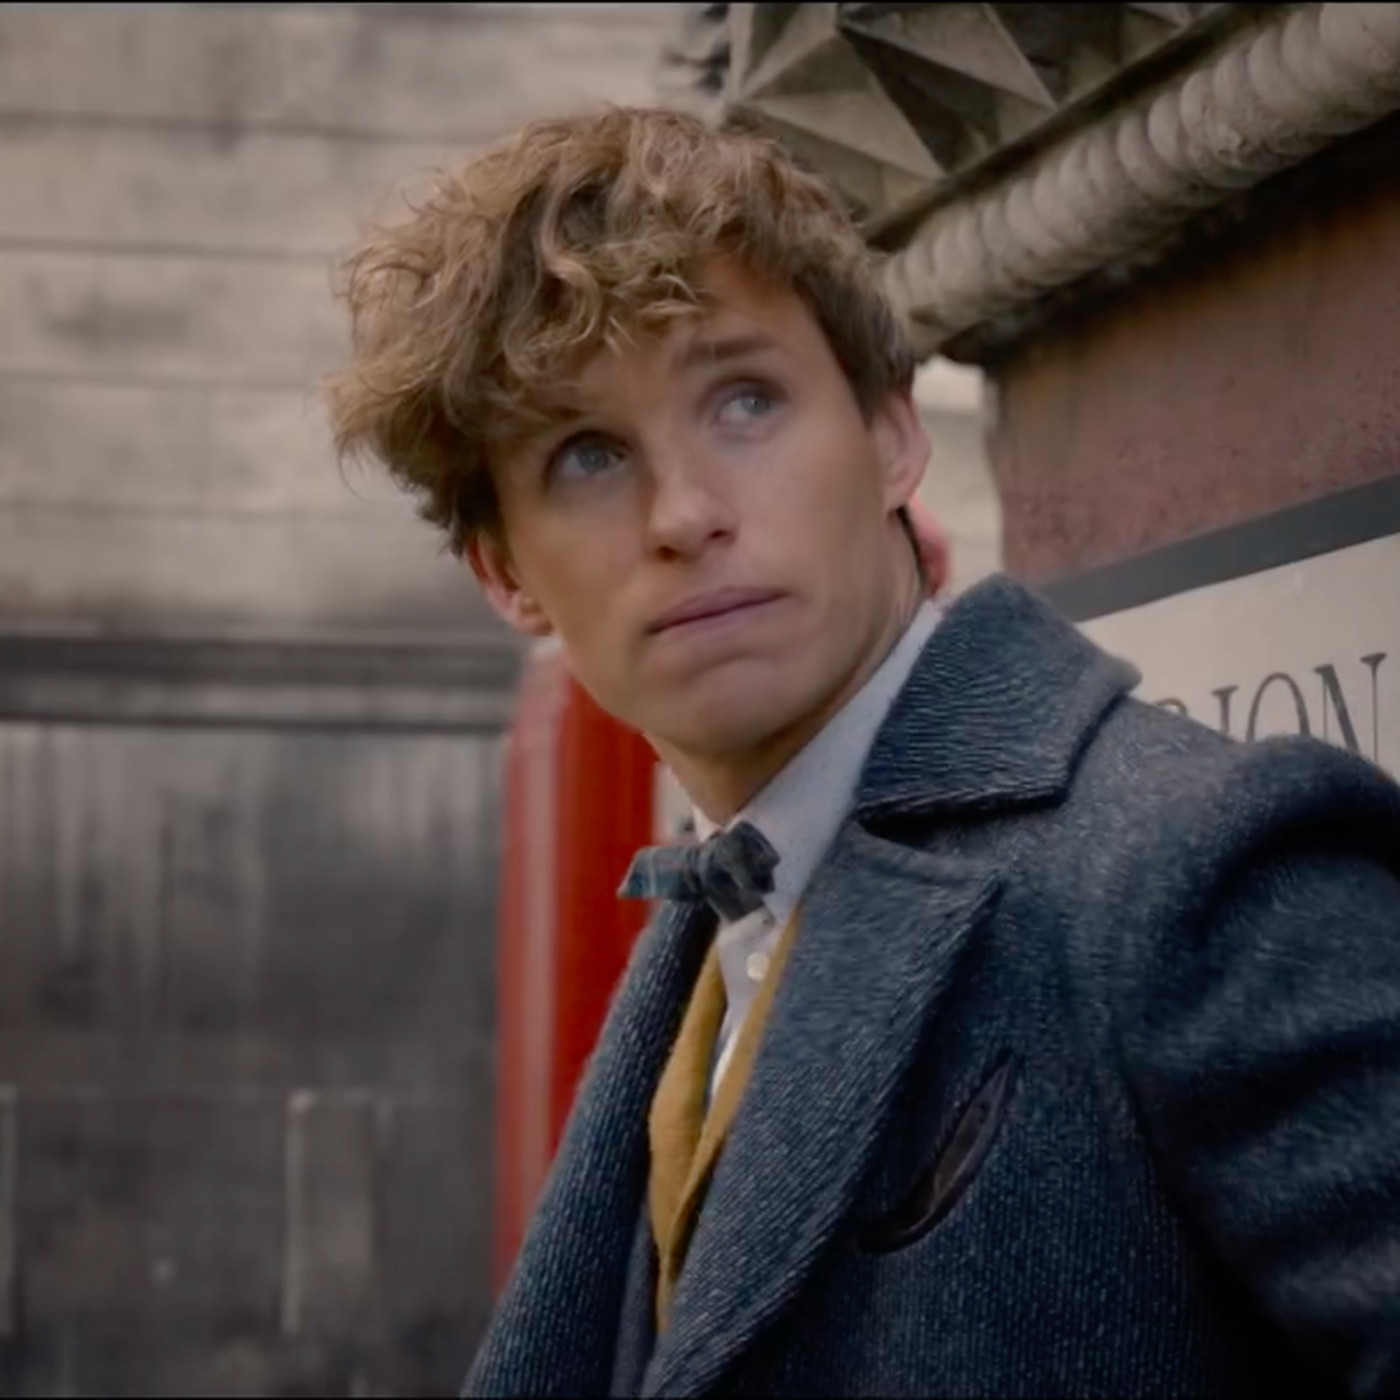 Watch The Latest Trailer For Fantastic Beasts Crimes Of Grindelwald